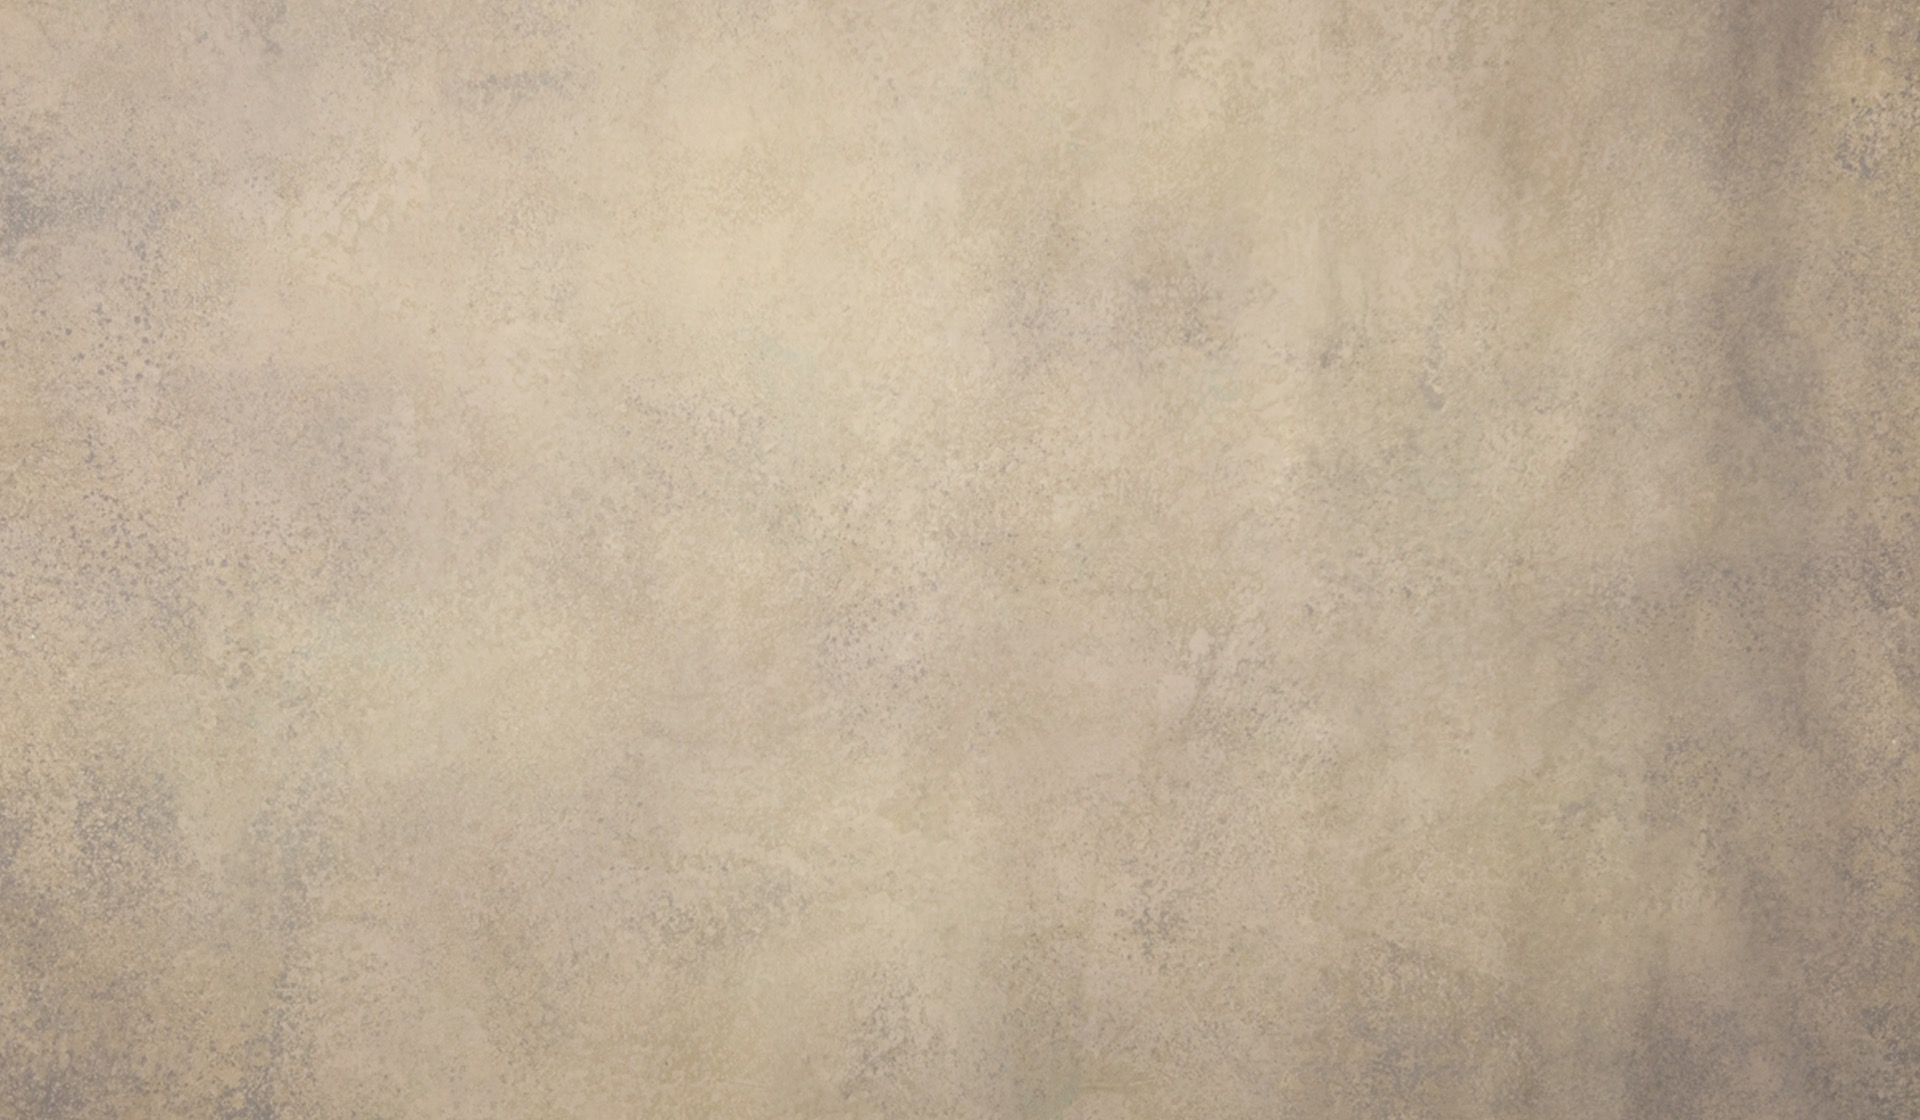 Gold' By Sue Bryce - Muslin Backdrops | Seamless